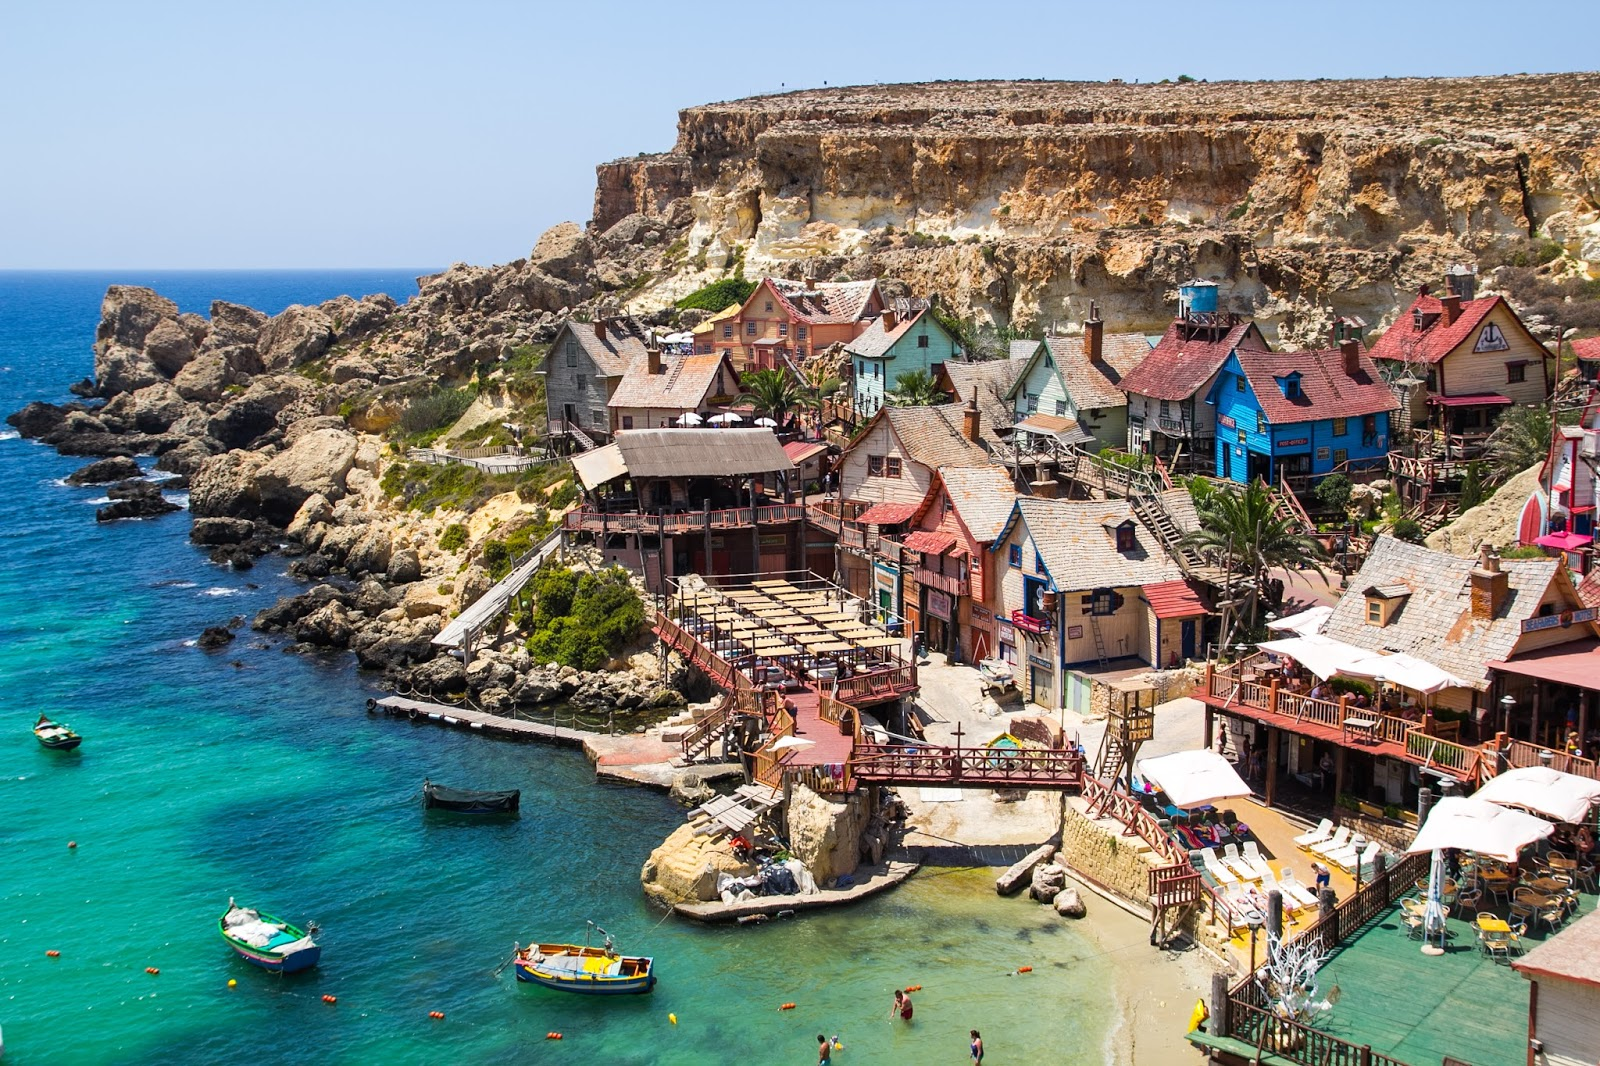 popeye-village-in-malta-0